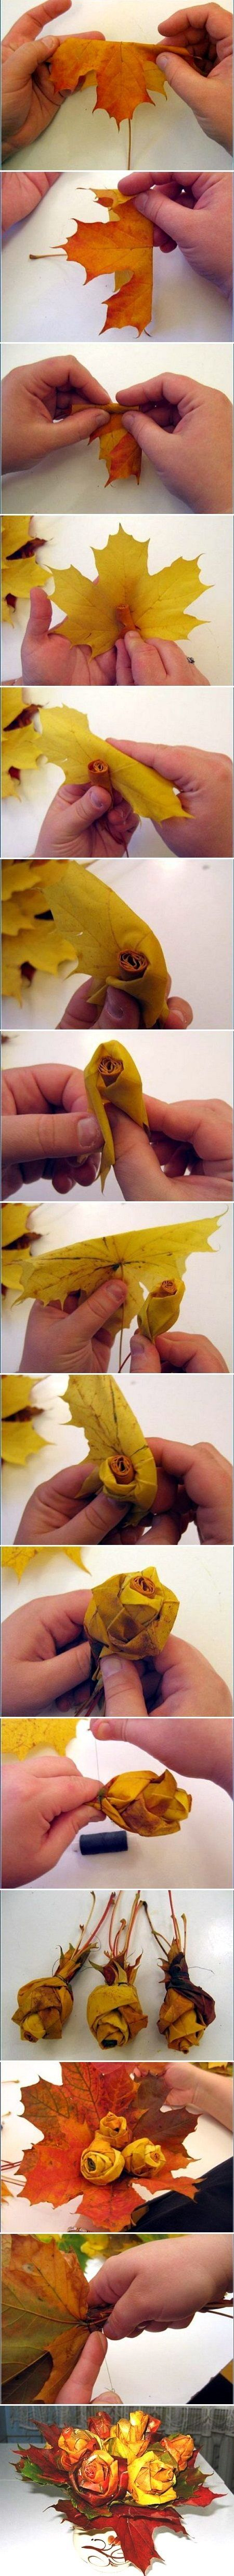 Clever way to use fall leaves to make roses by ElhamZH